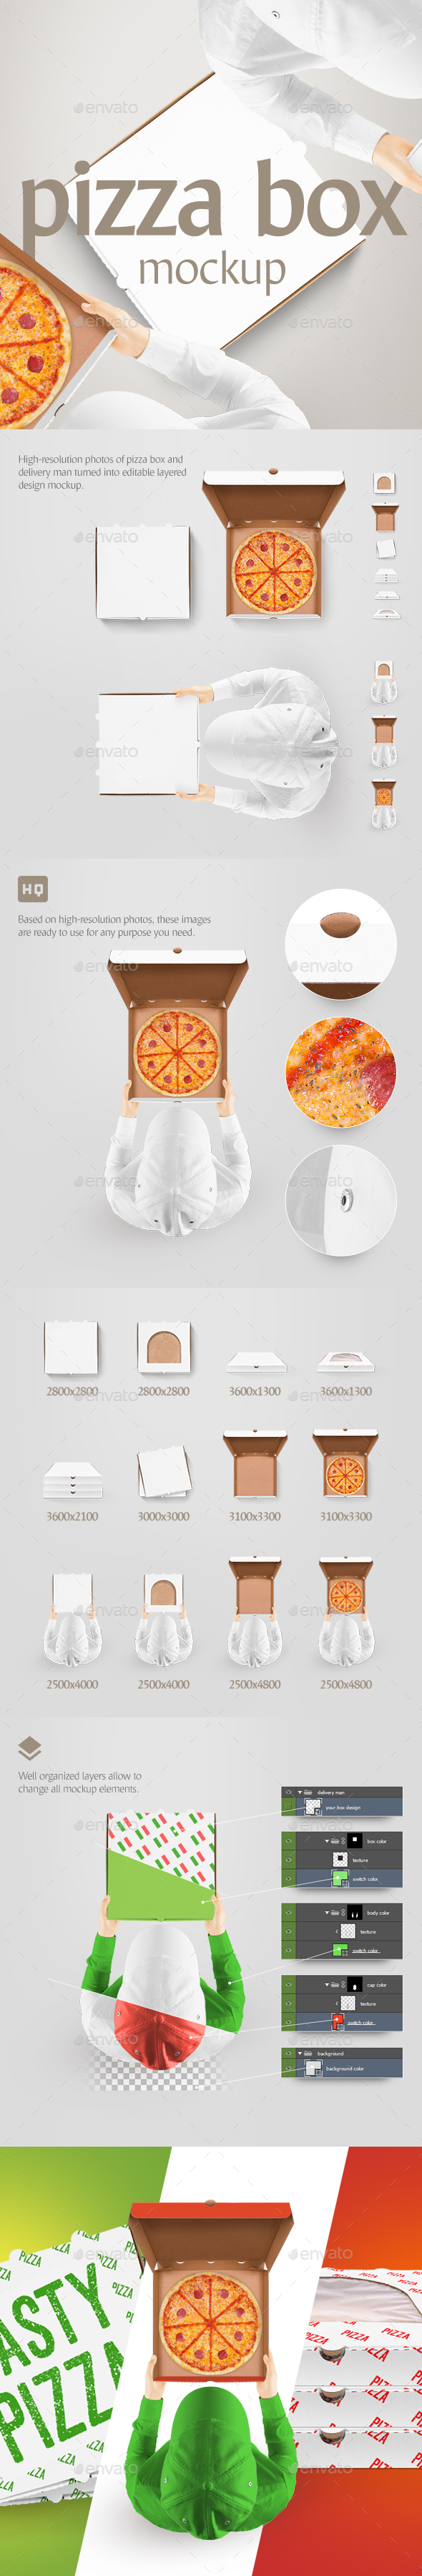 Pizza Box Mockup - Food and Drink Packaging